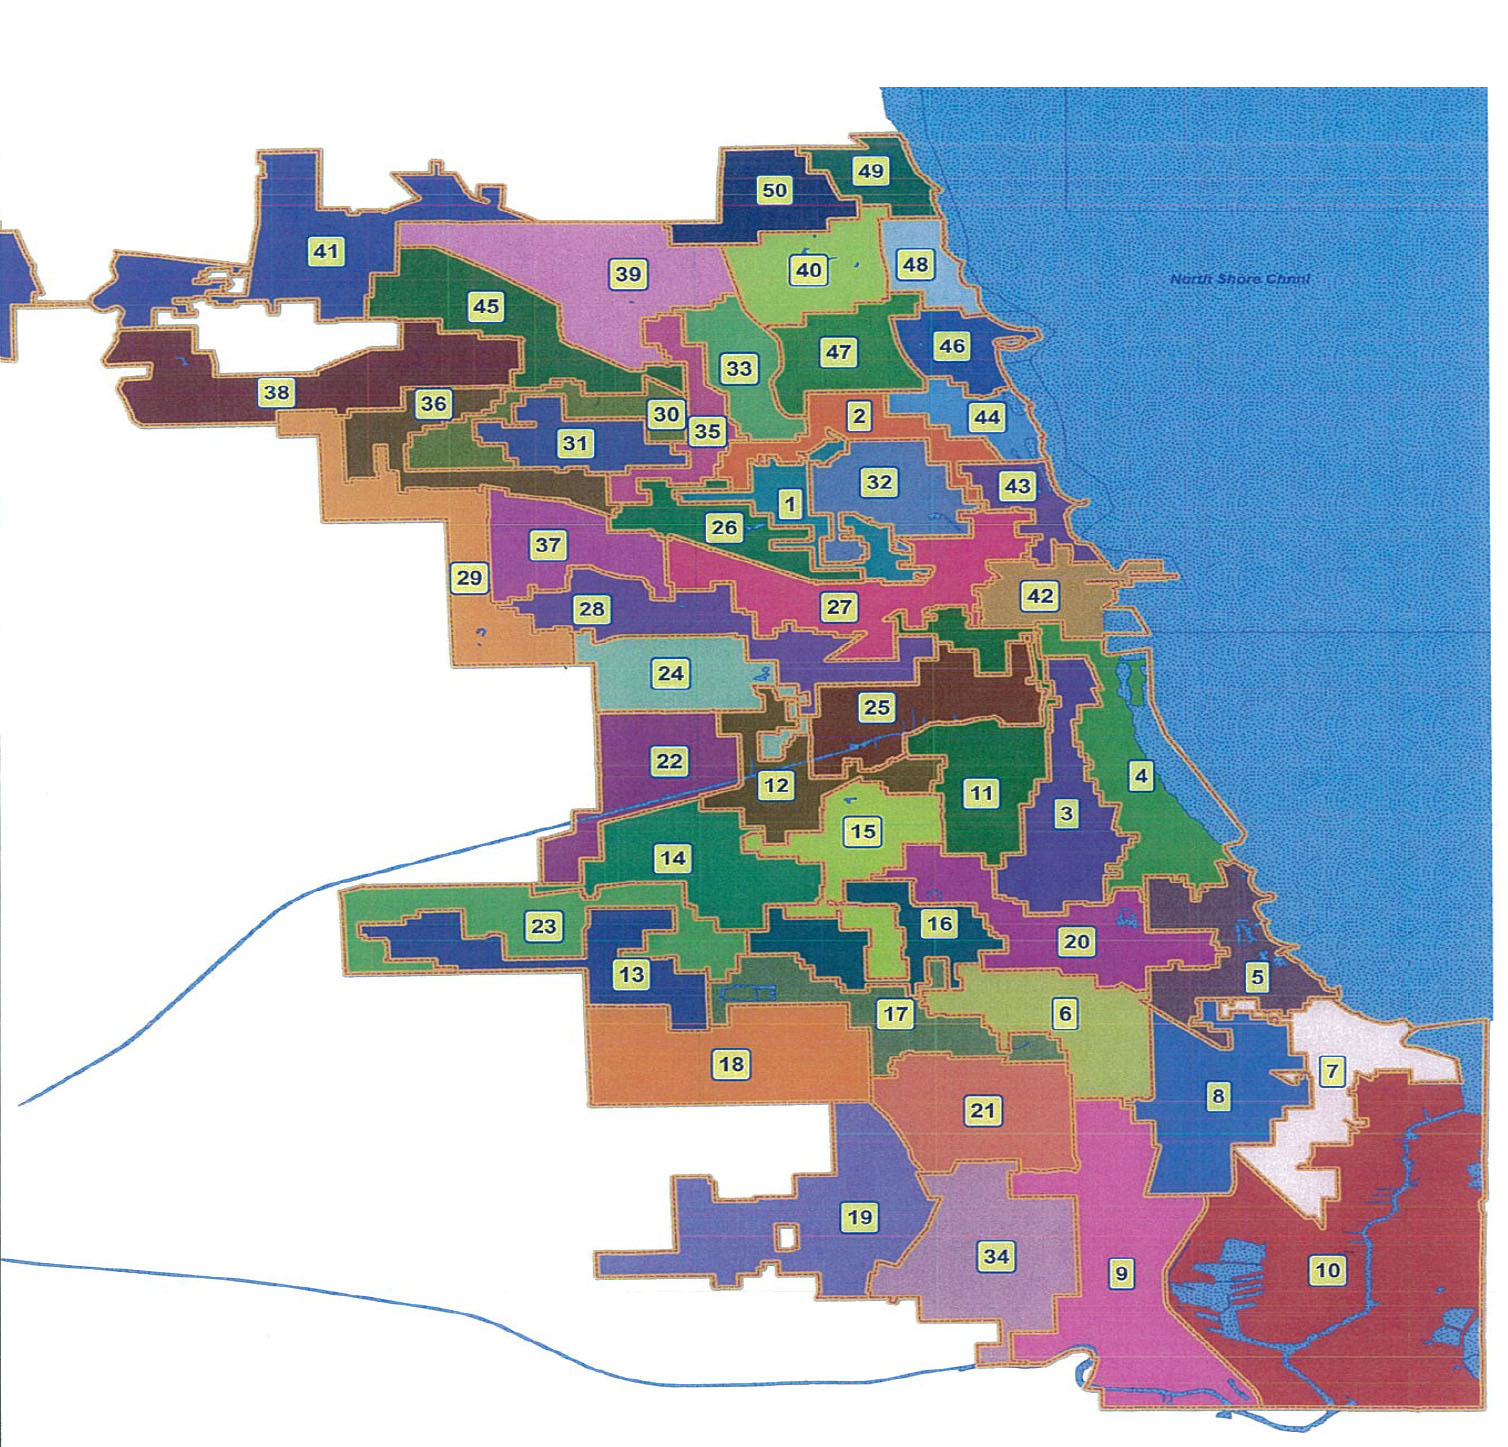 The Sixth Ward - Chicago map safety